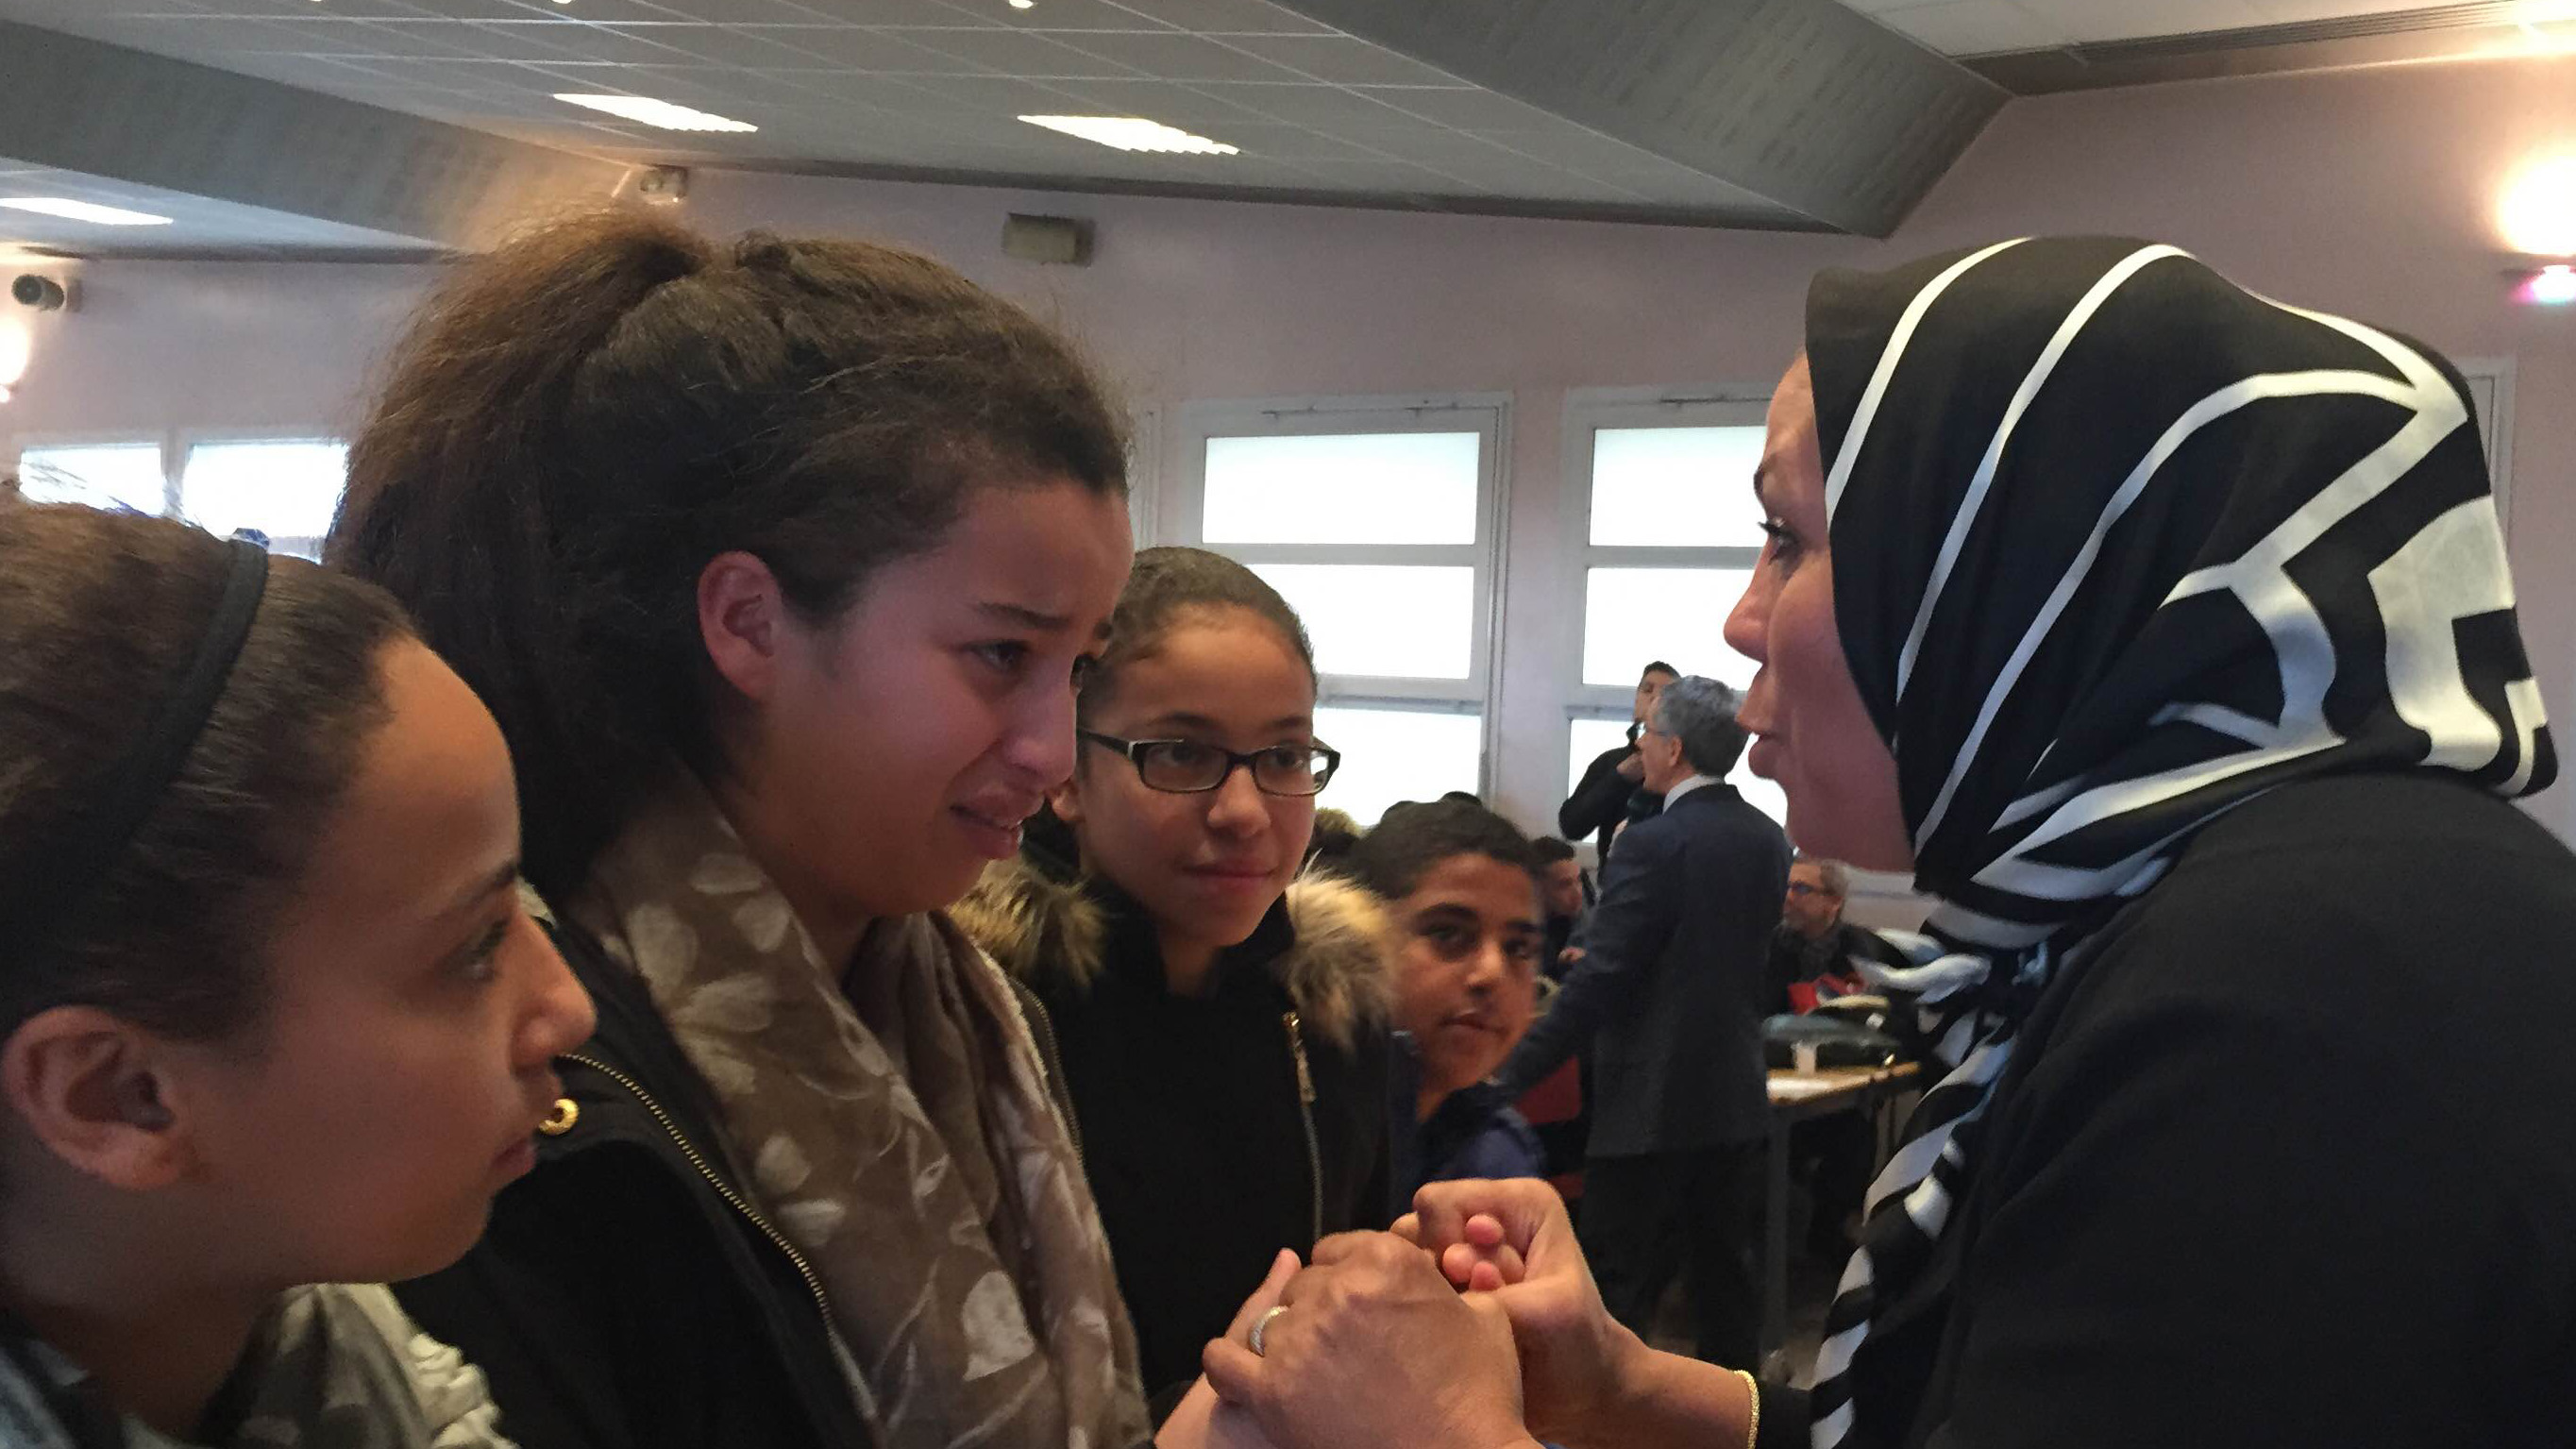 Latifa bin Ziaten (r) speaks with students about her son, Imad, who was murdered by Islamic extremist Mohamed Merah. At the end of her talk, students hug her. One girl says Latifah reminds her of her own mother.